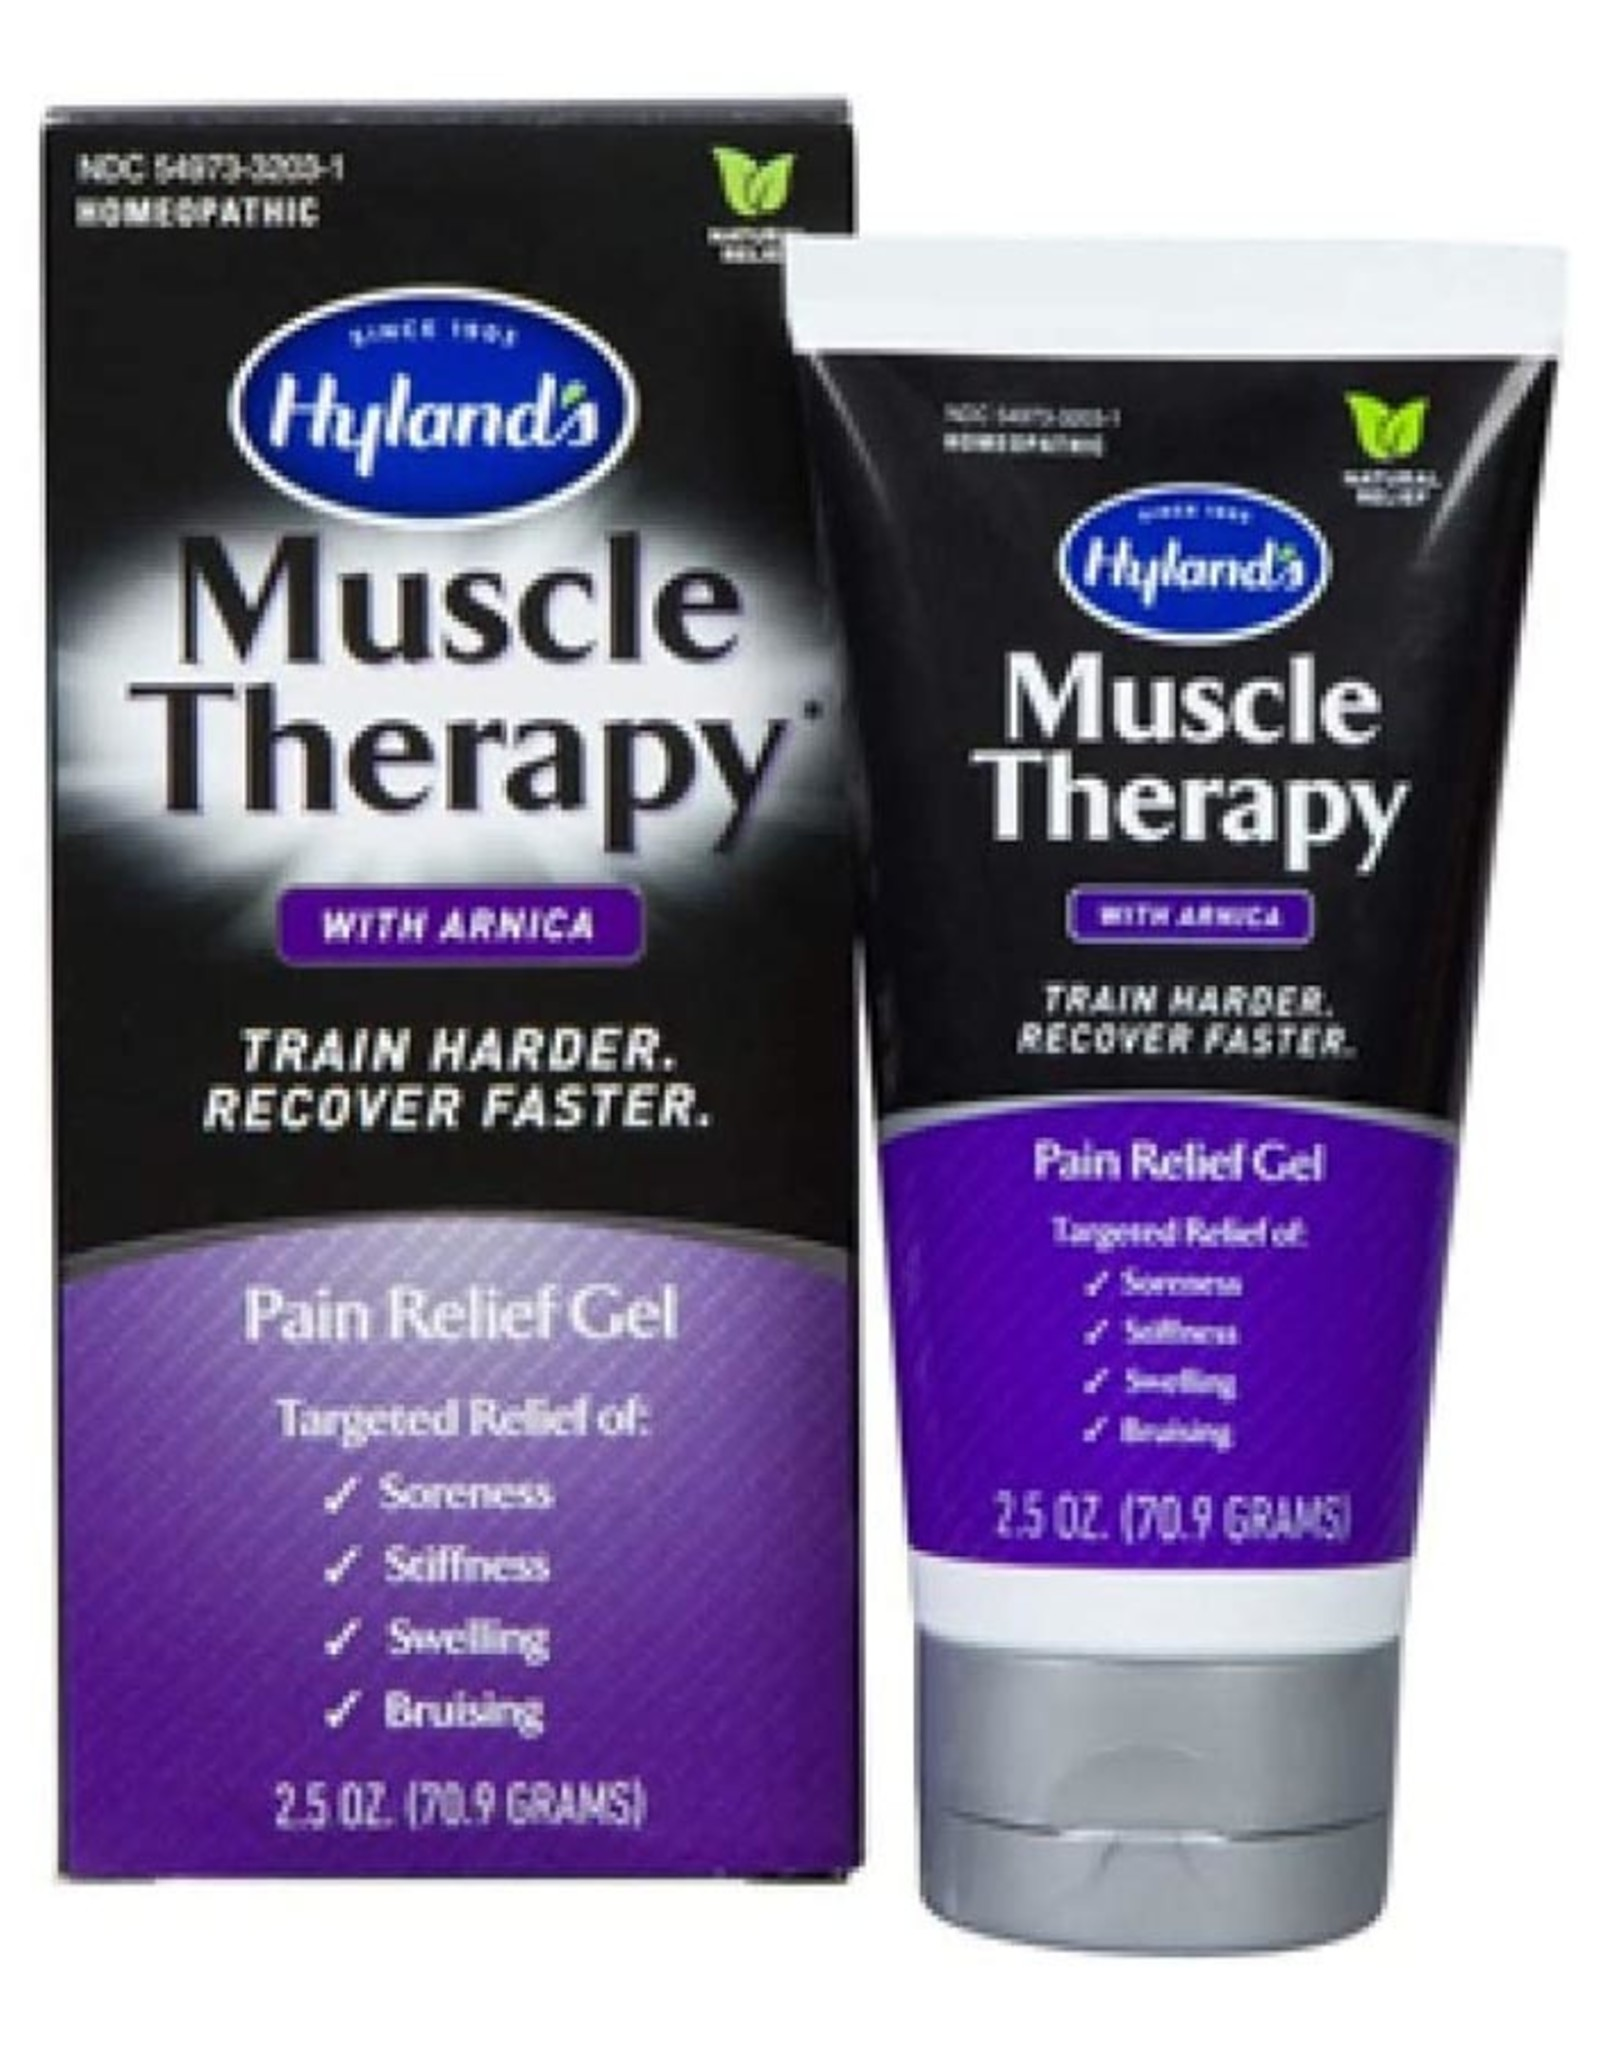 Hyland's Muscle Therapy